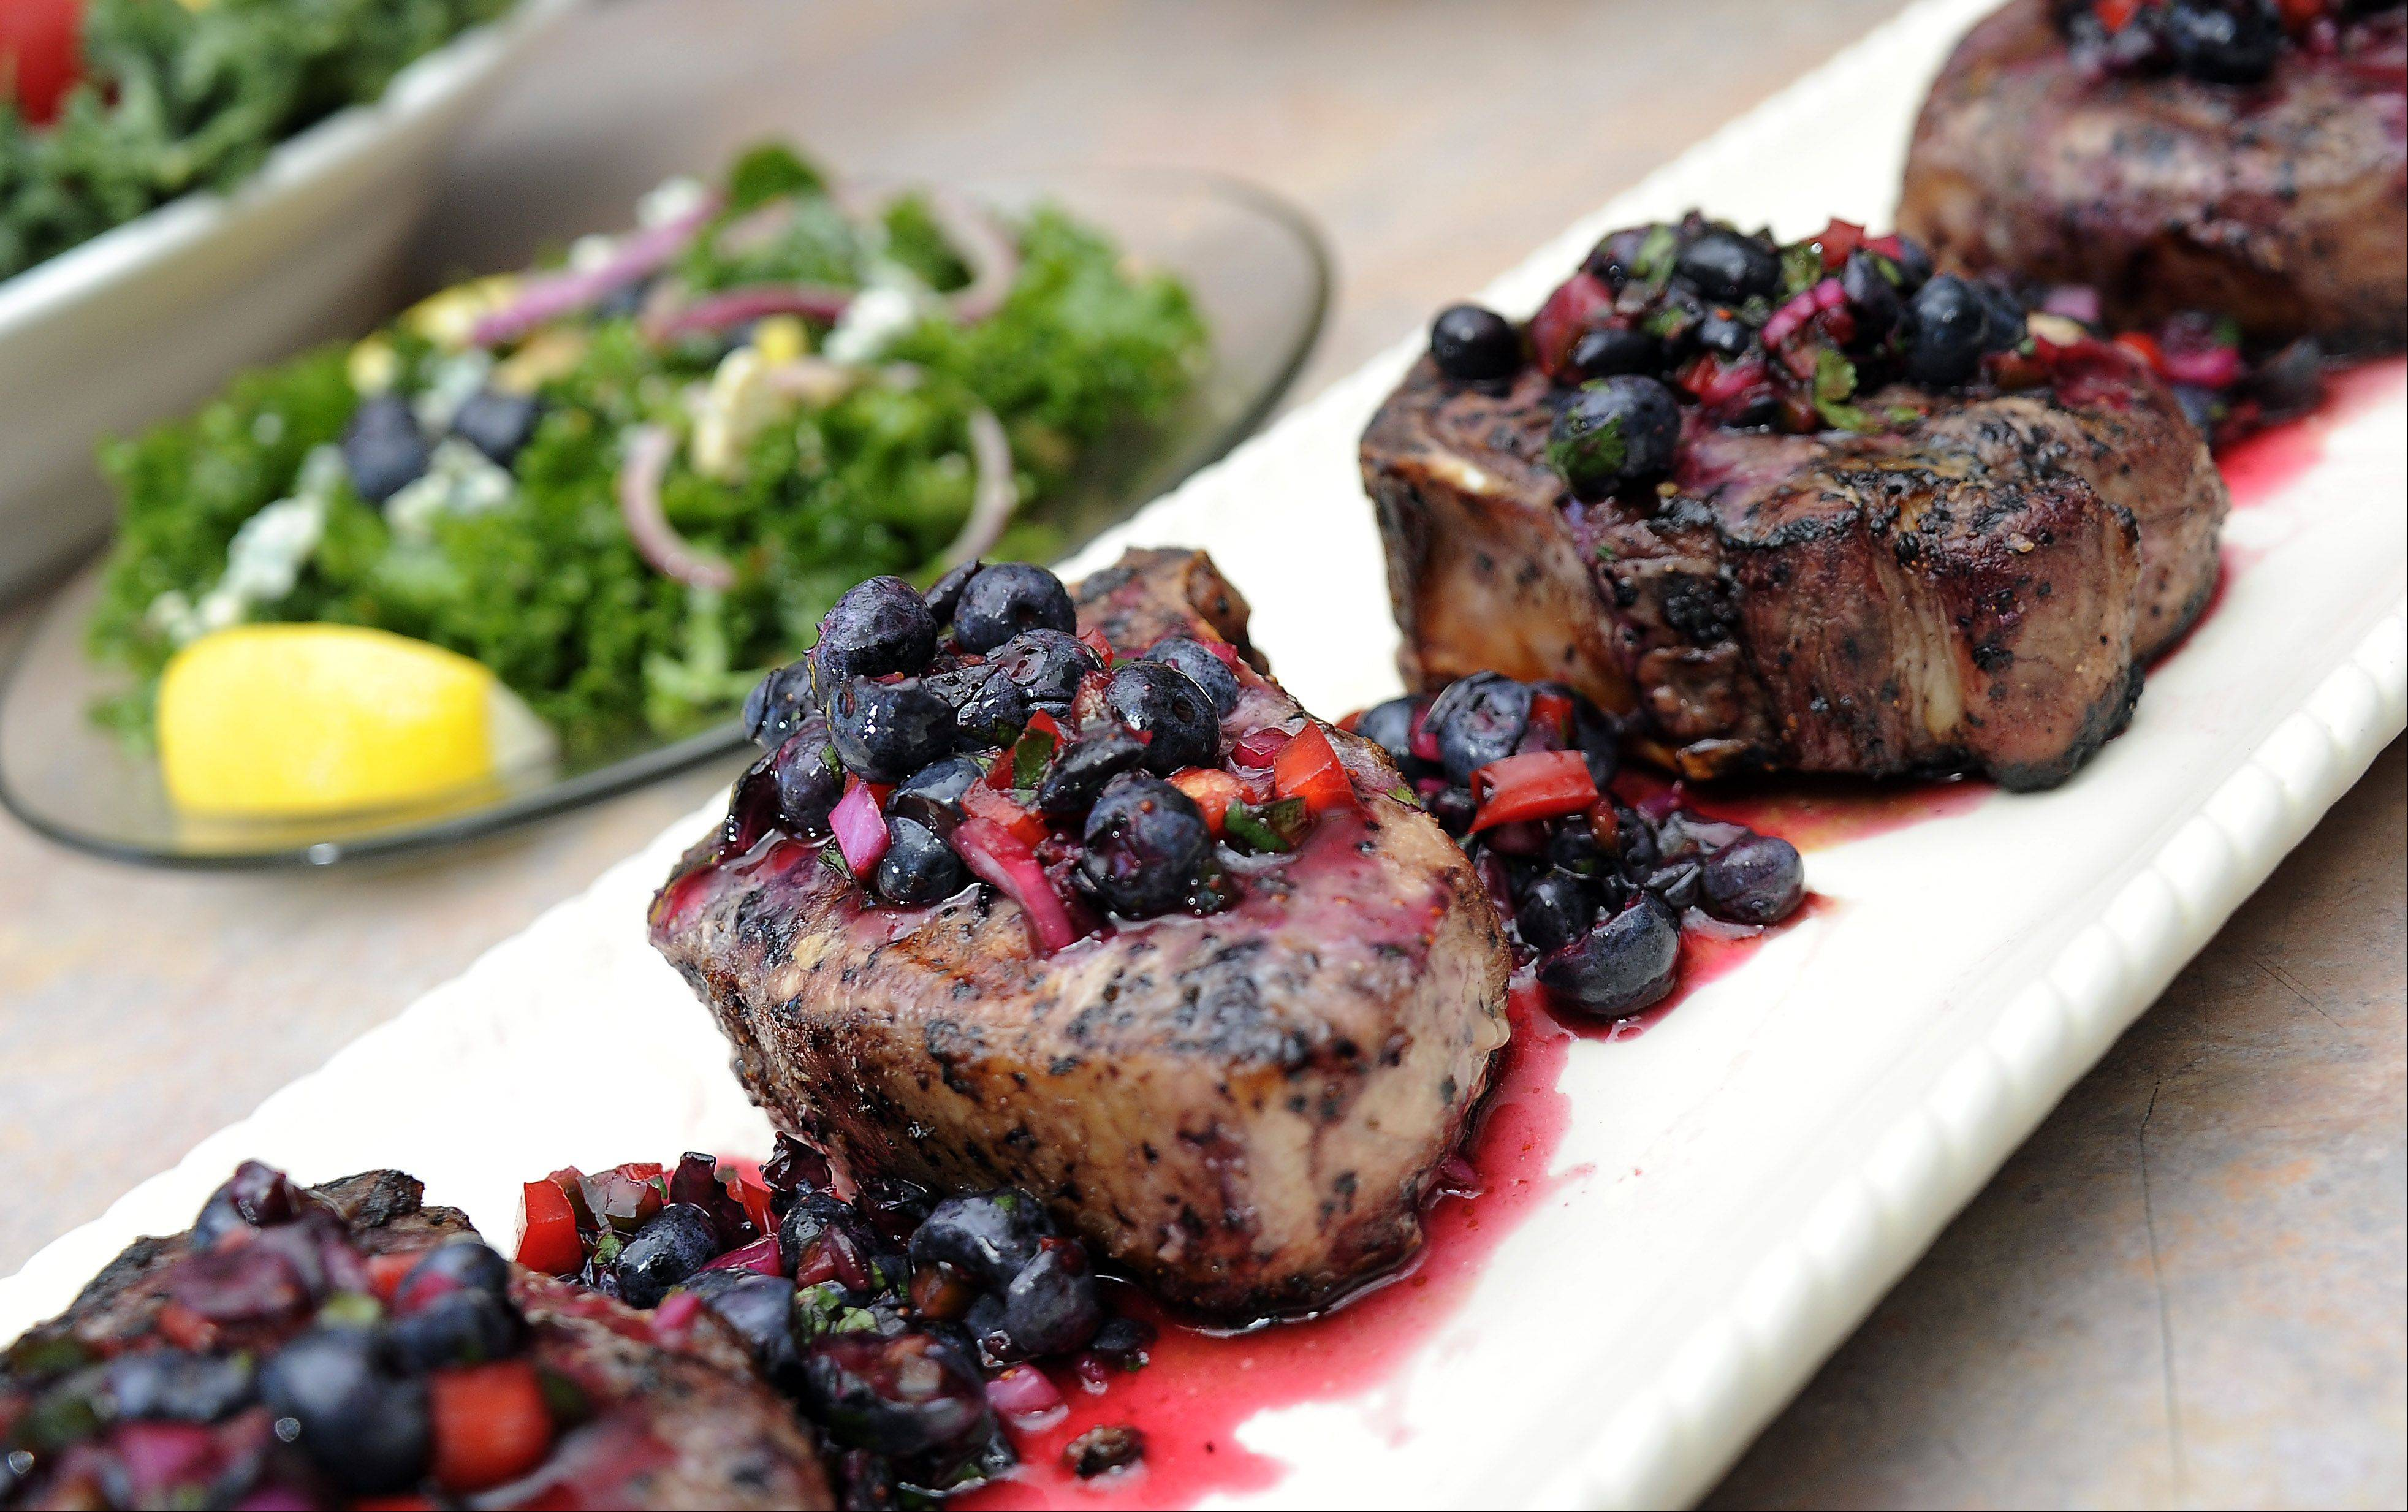 Ronald Nunes serves a kale, blueberry and walnut salad with blueberry salsa-topped pork chops.